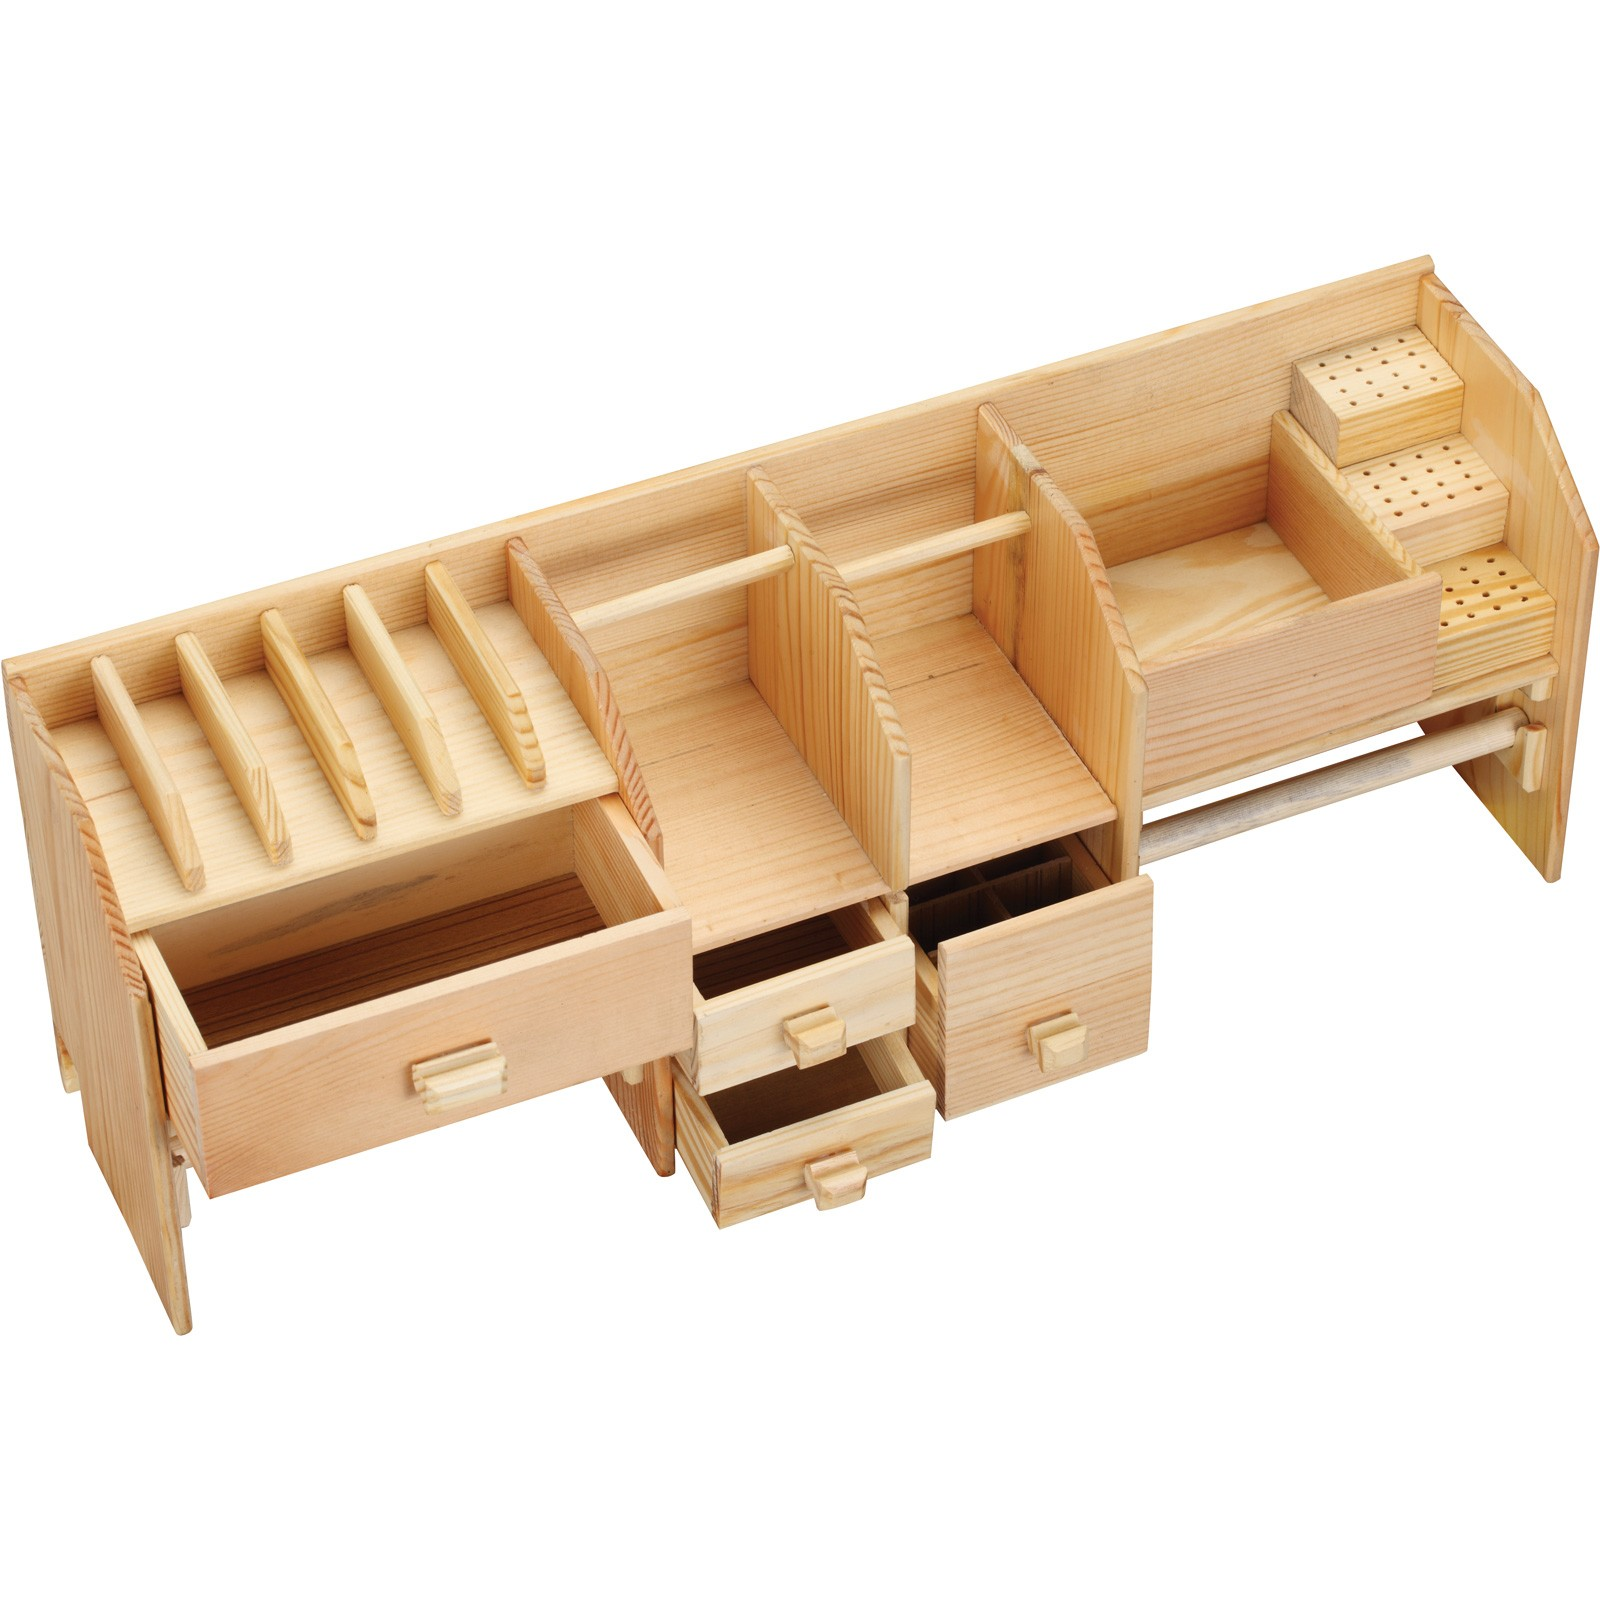 A Amp A Jewelry Supply Mini Bench Top Tool Organizer